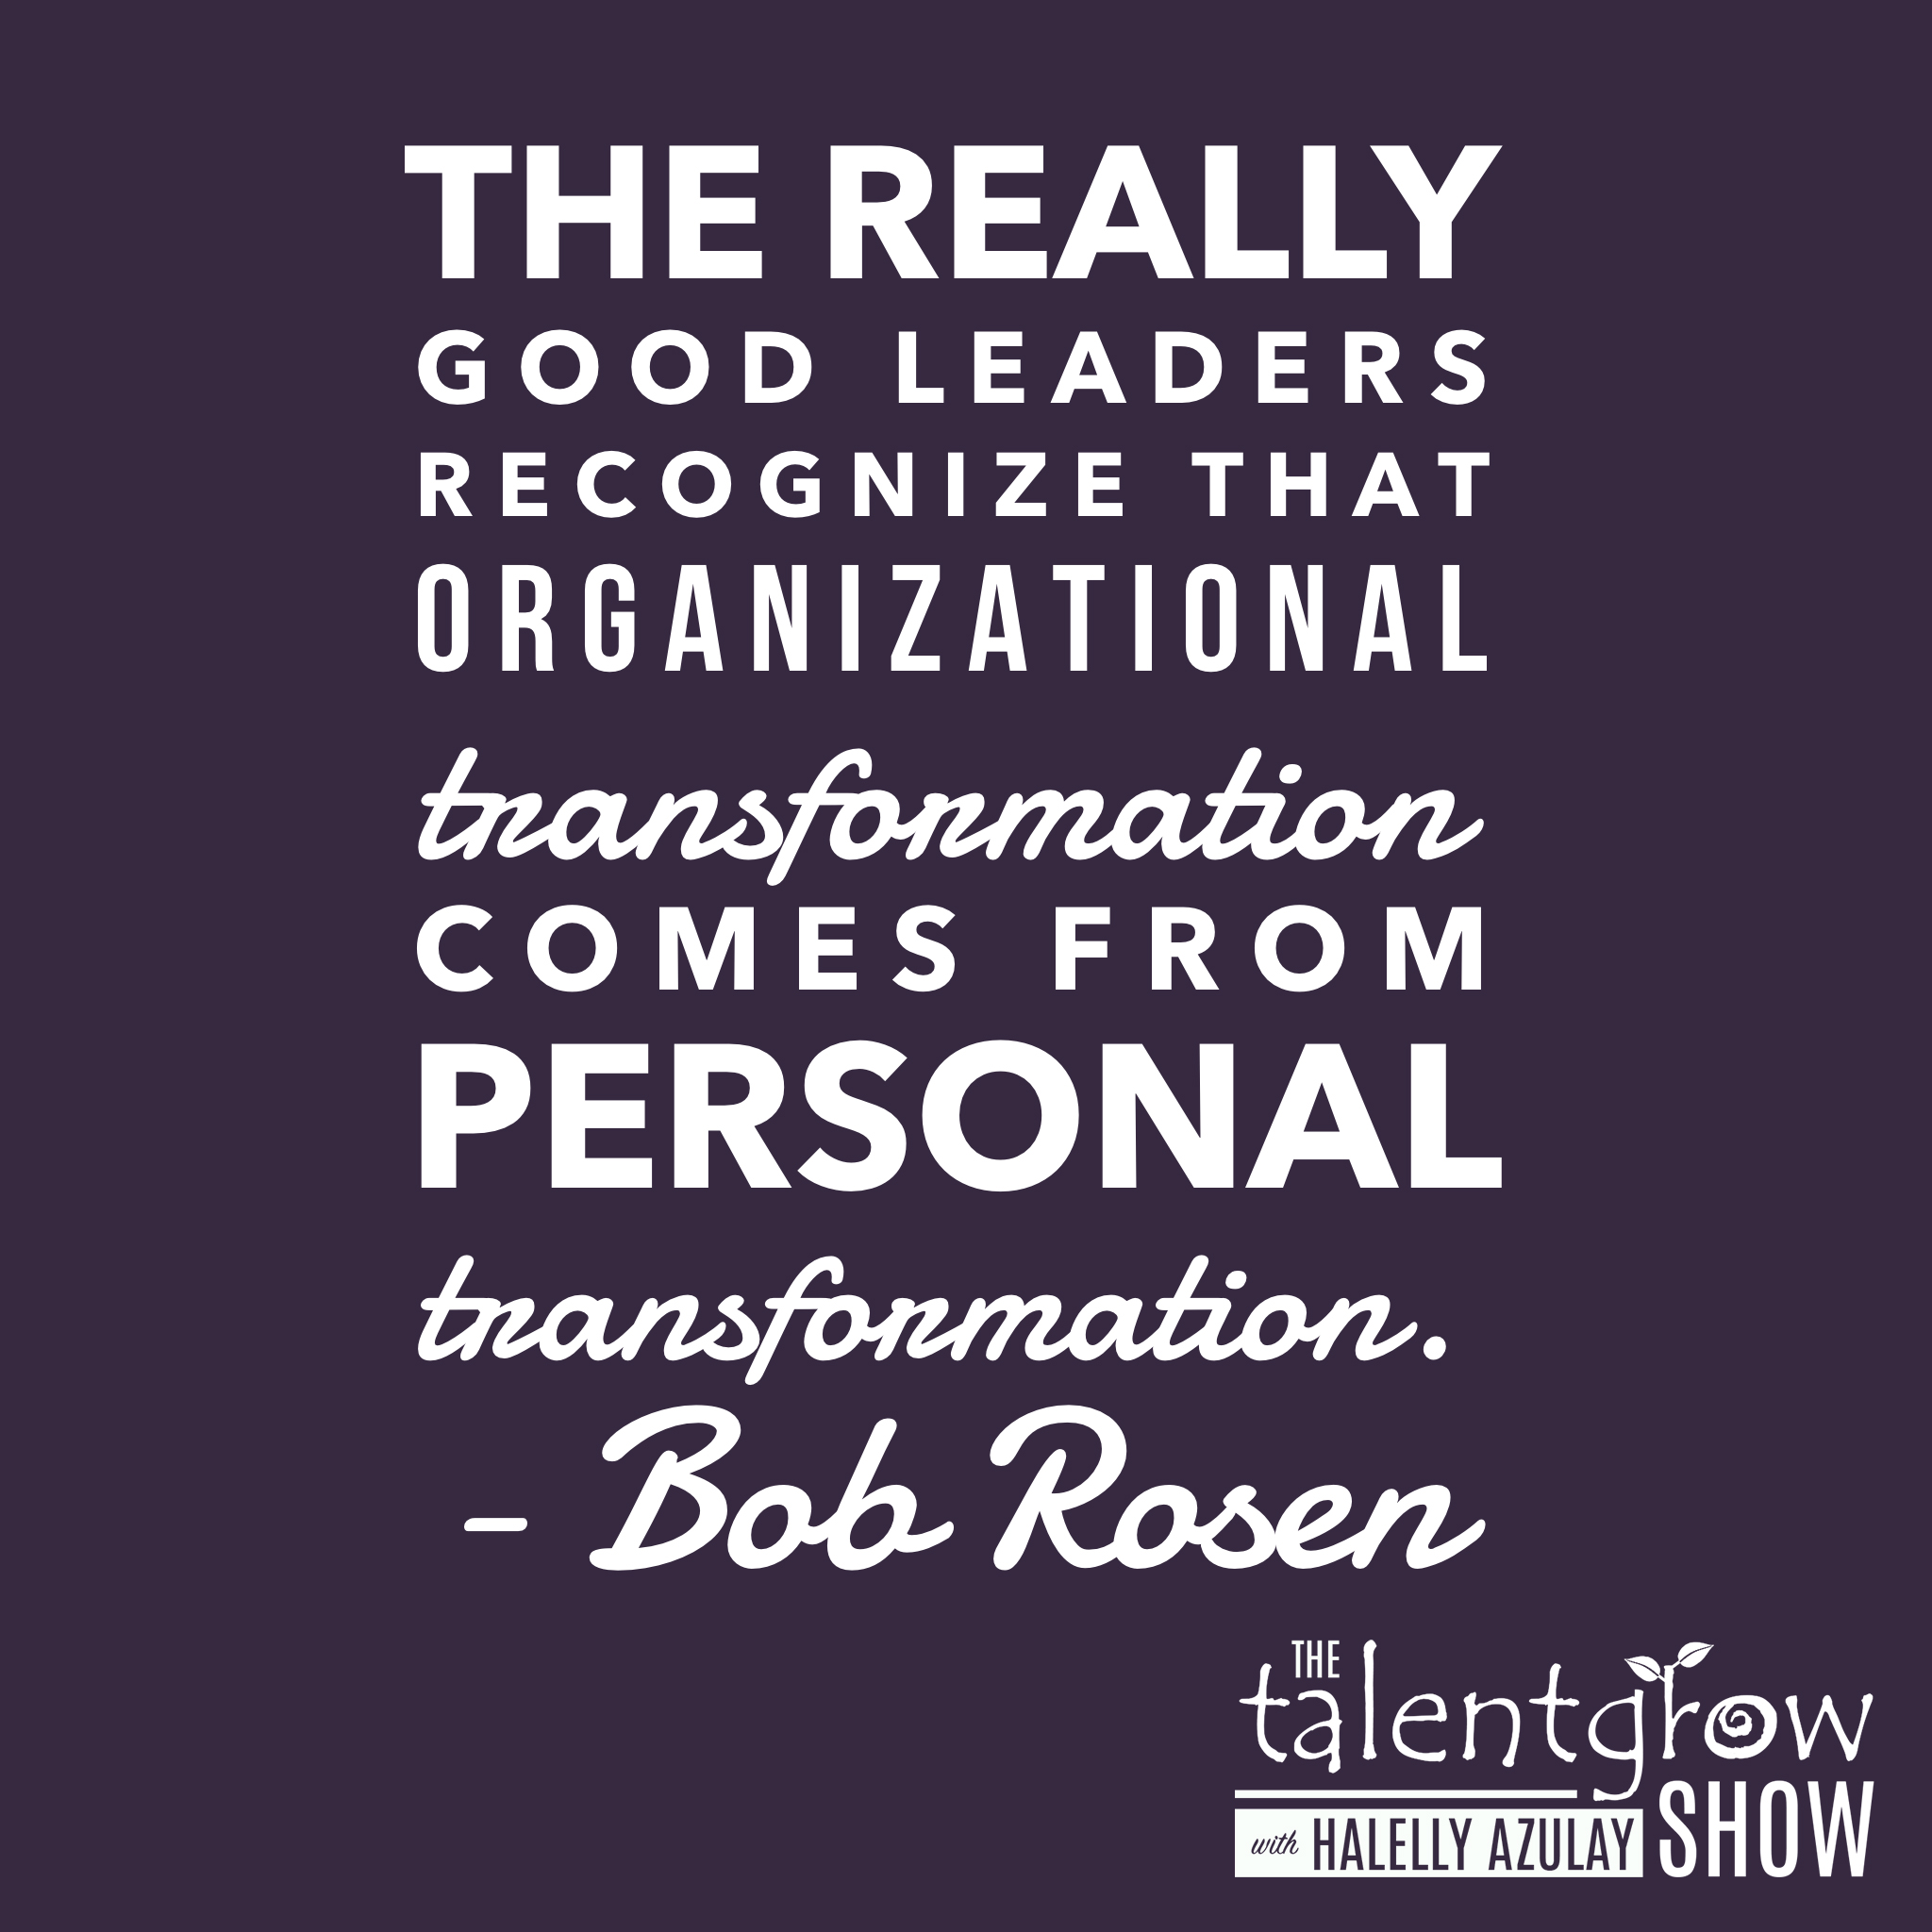 Healthy leadership advice from Bob Rosen on the TalentGrow Show podcast with Halelly Azulay